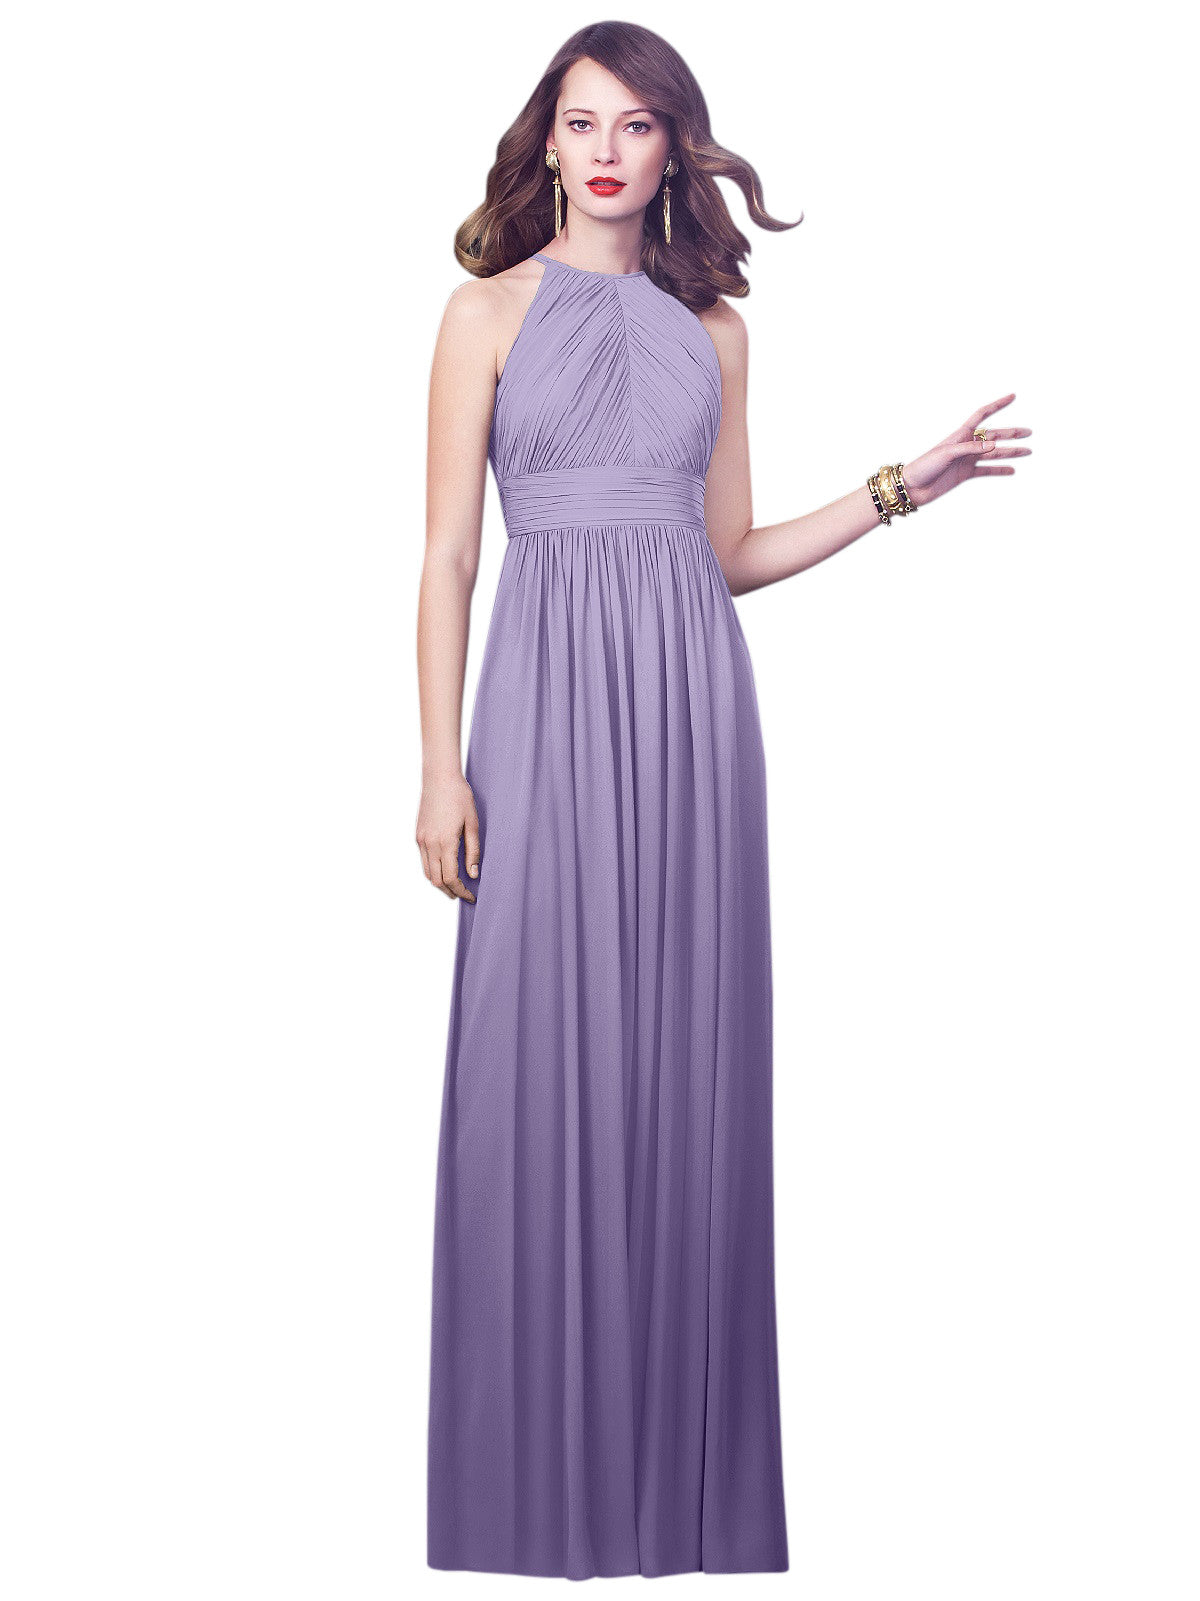 Dessy 2918 Bridesmaid Dress - Weddings by Lo